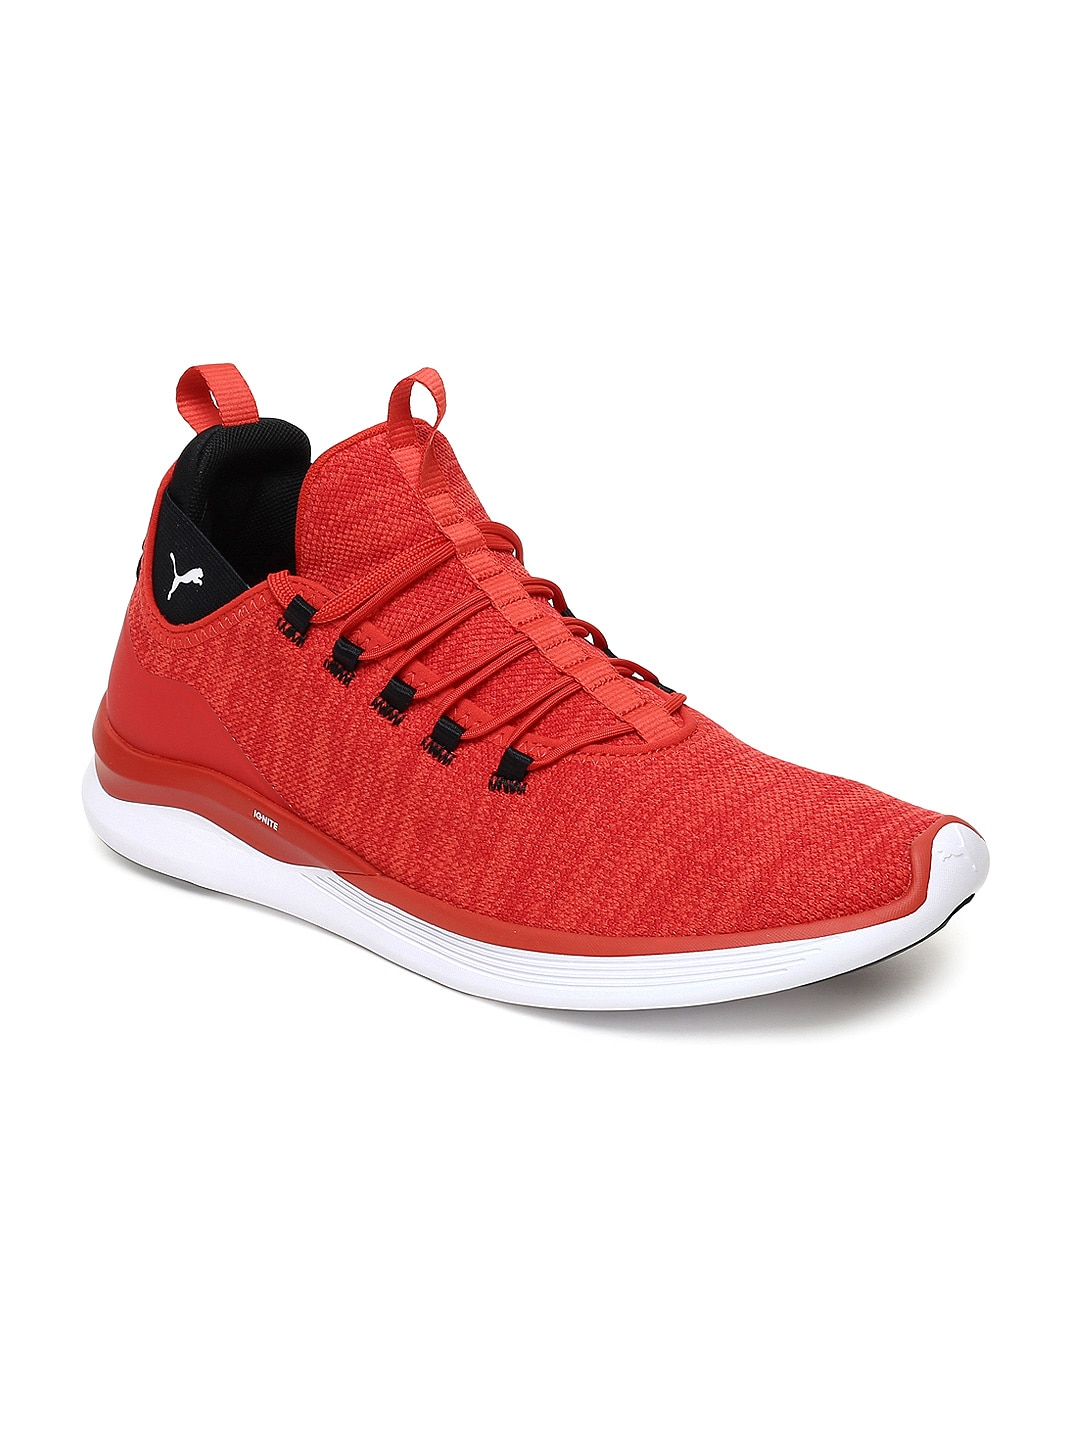 e083ae0c092 Puma Red Shoes - Buy Puma Red Shoes Online in India